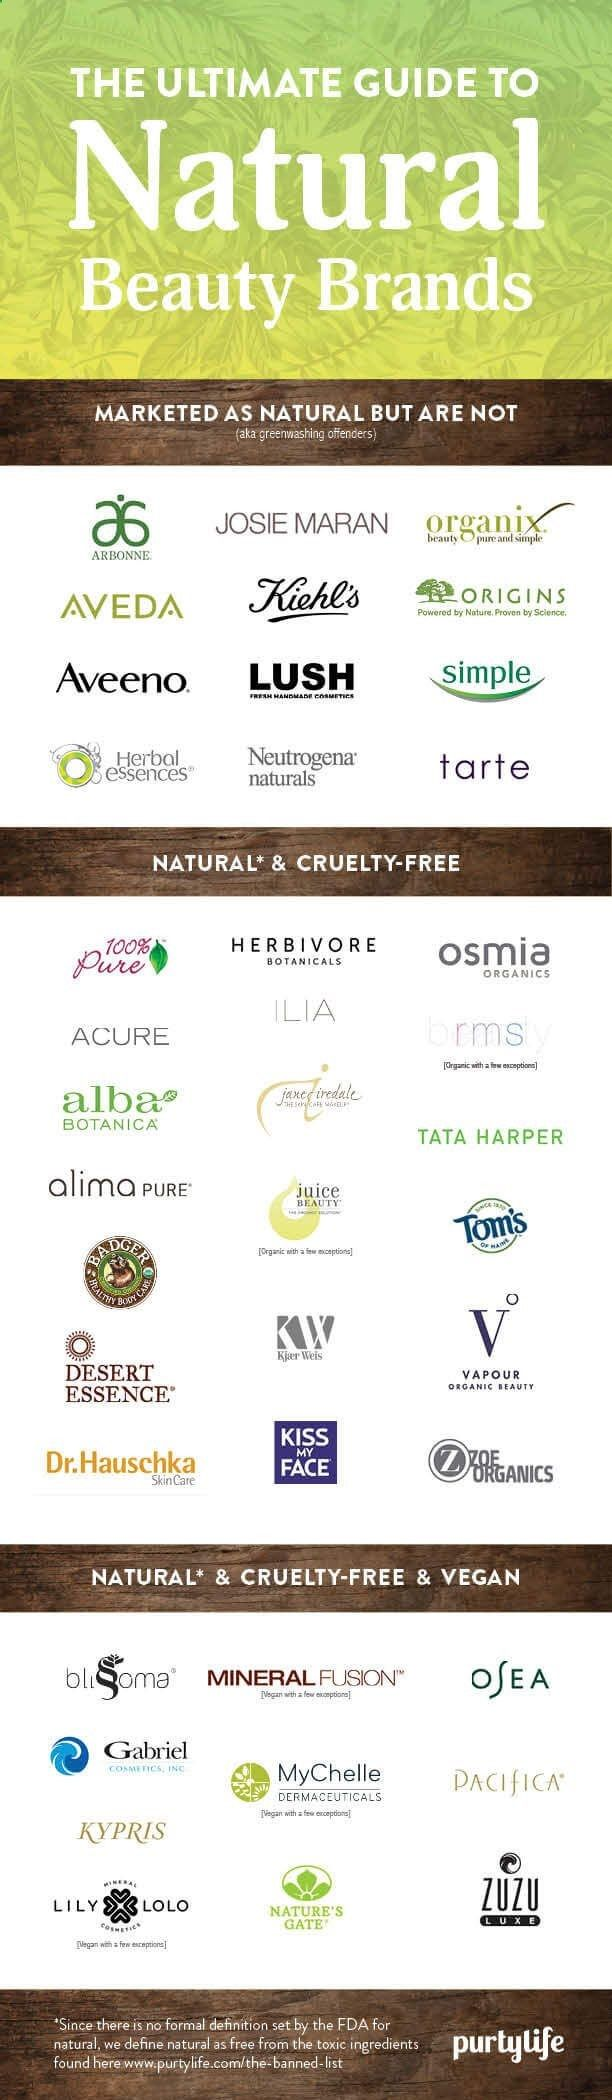 Skin Care Tips - The Ultimate Guide to the Natural, Organic and Vegan Beauty Brands | Discover Non-Toxic, Chemical-Free Makeup & Skincare // www.purtylife.com... www.addisonrenee.com | Jaey Do you still not know the magnificent benefits of castor oil for wrinkles, blemishes, dark circles, eyelashes... and, ultimately, for the skin of the face? This oil that is extracted from the seeds of the Ricinuscommunis plant contains many fatty acids, vitamins, proteins and minerals that are excel...